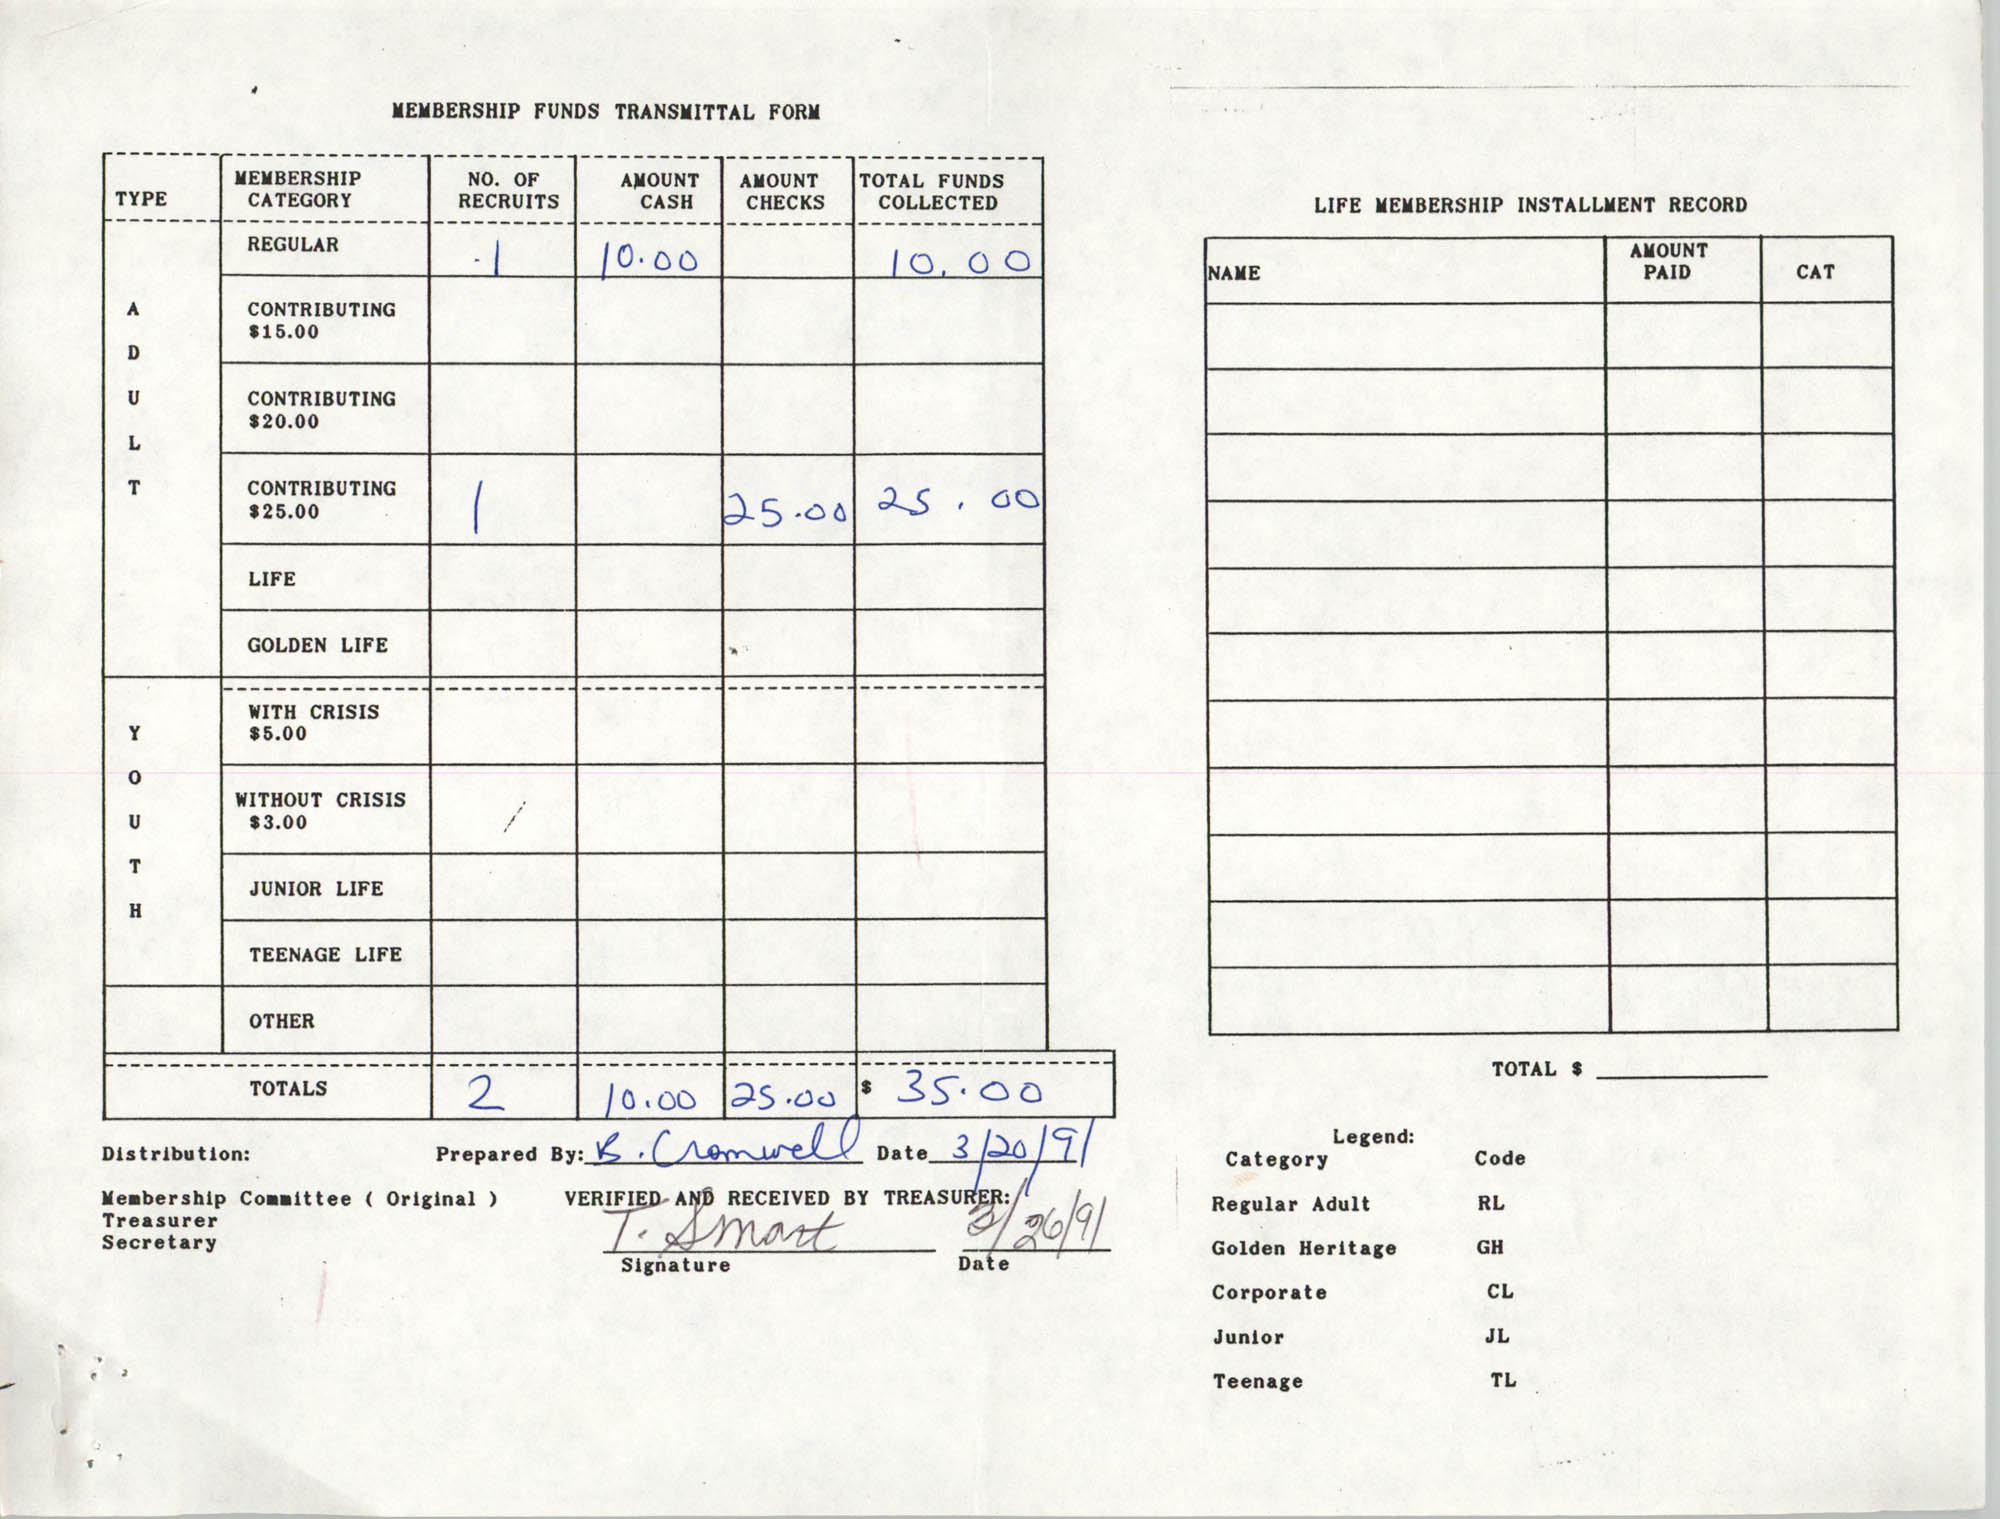 Charleston Branch of the NAACP Funds Transmittal Forms, March 1991, Page 13